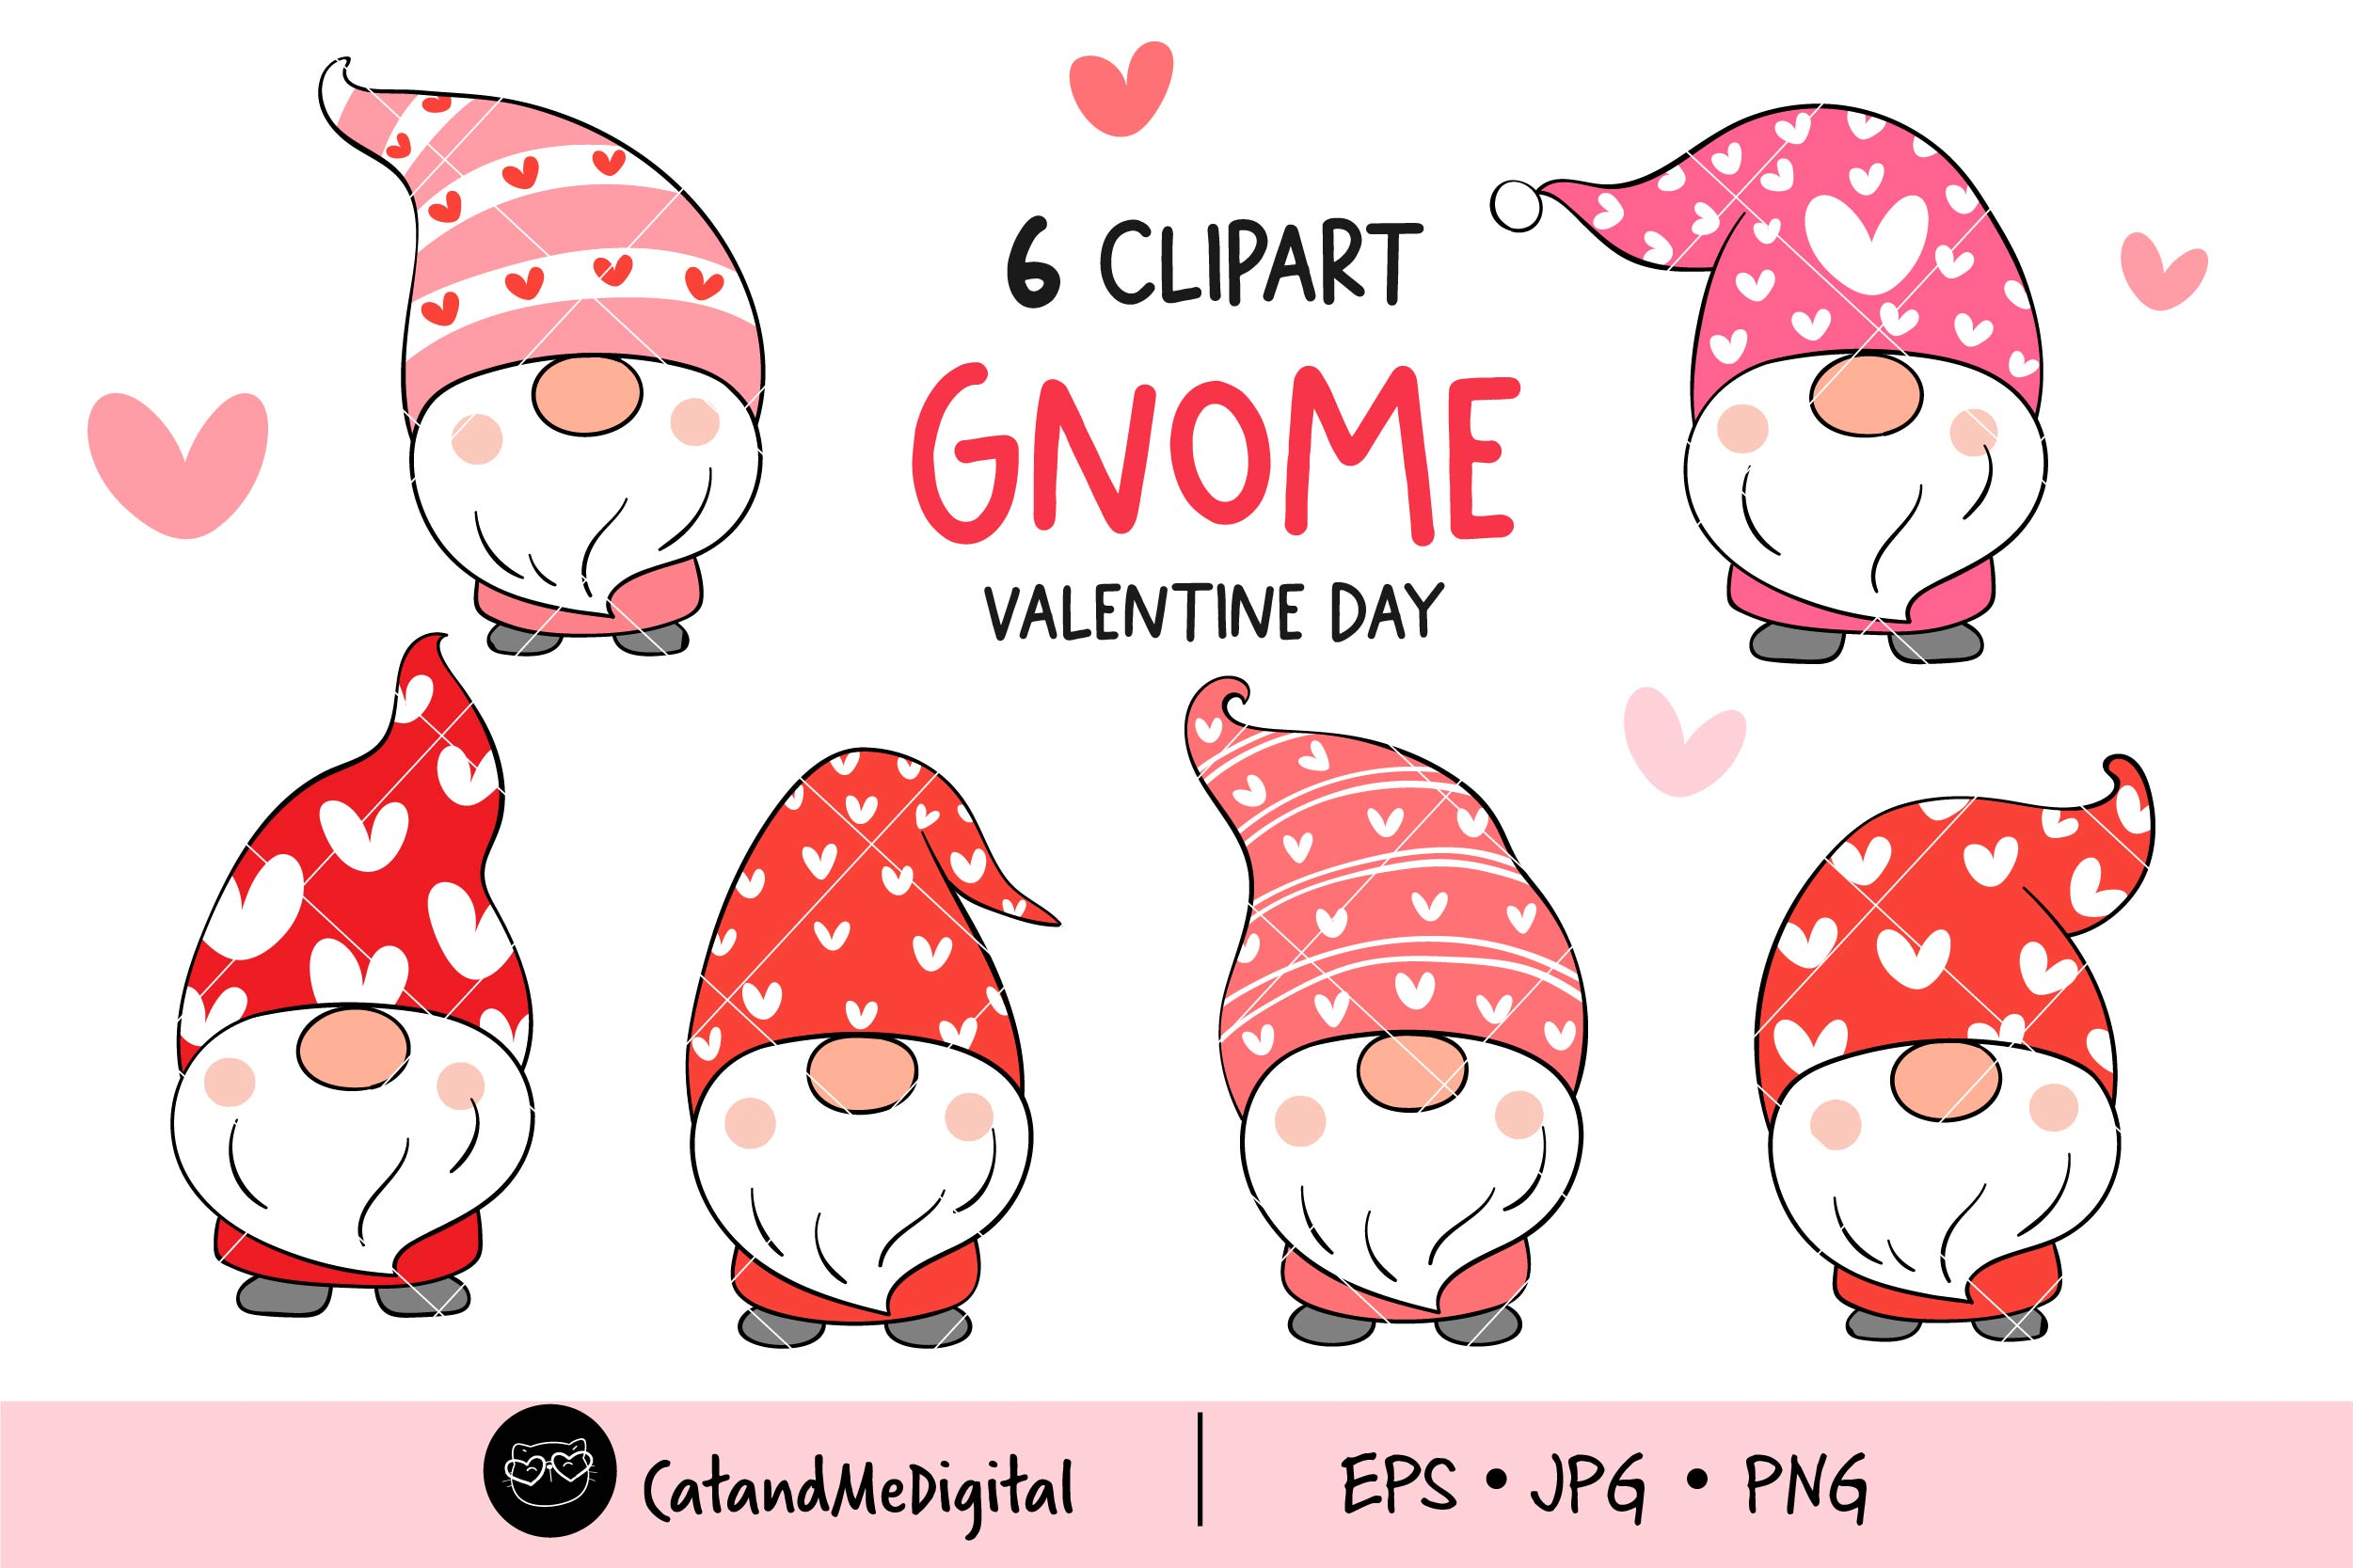 Valentine Gnome Stickers Printable PNG